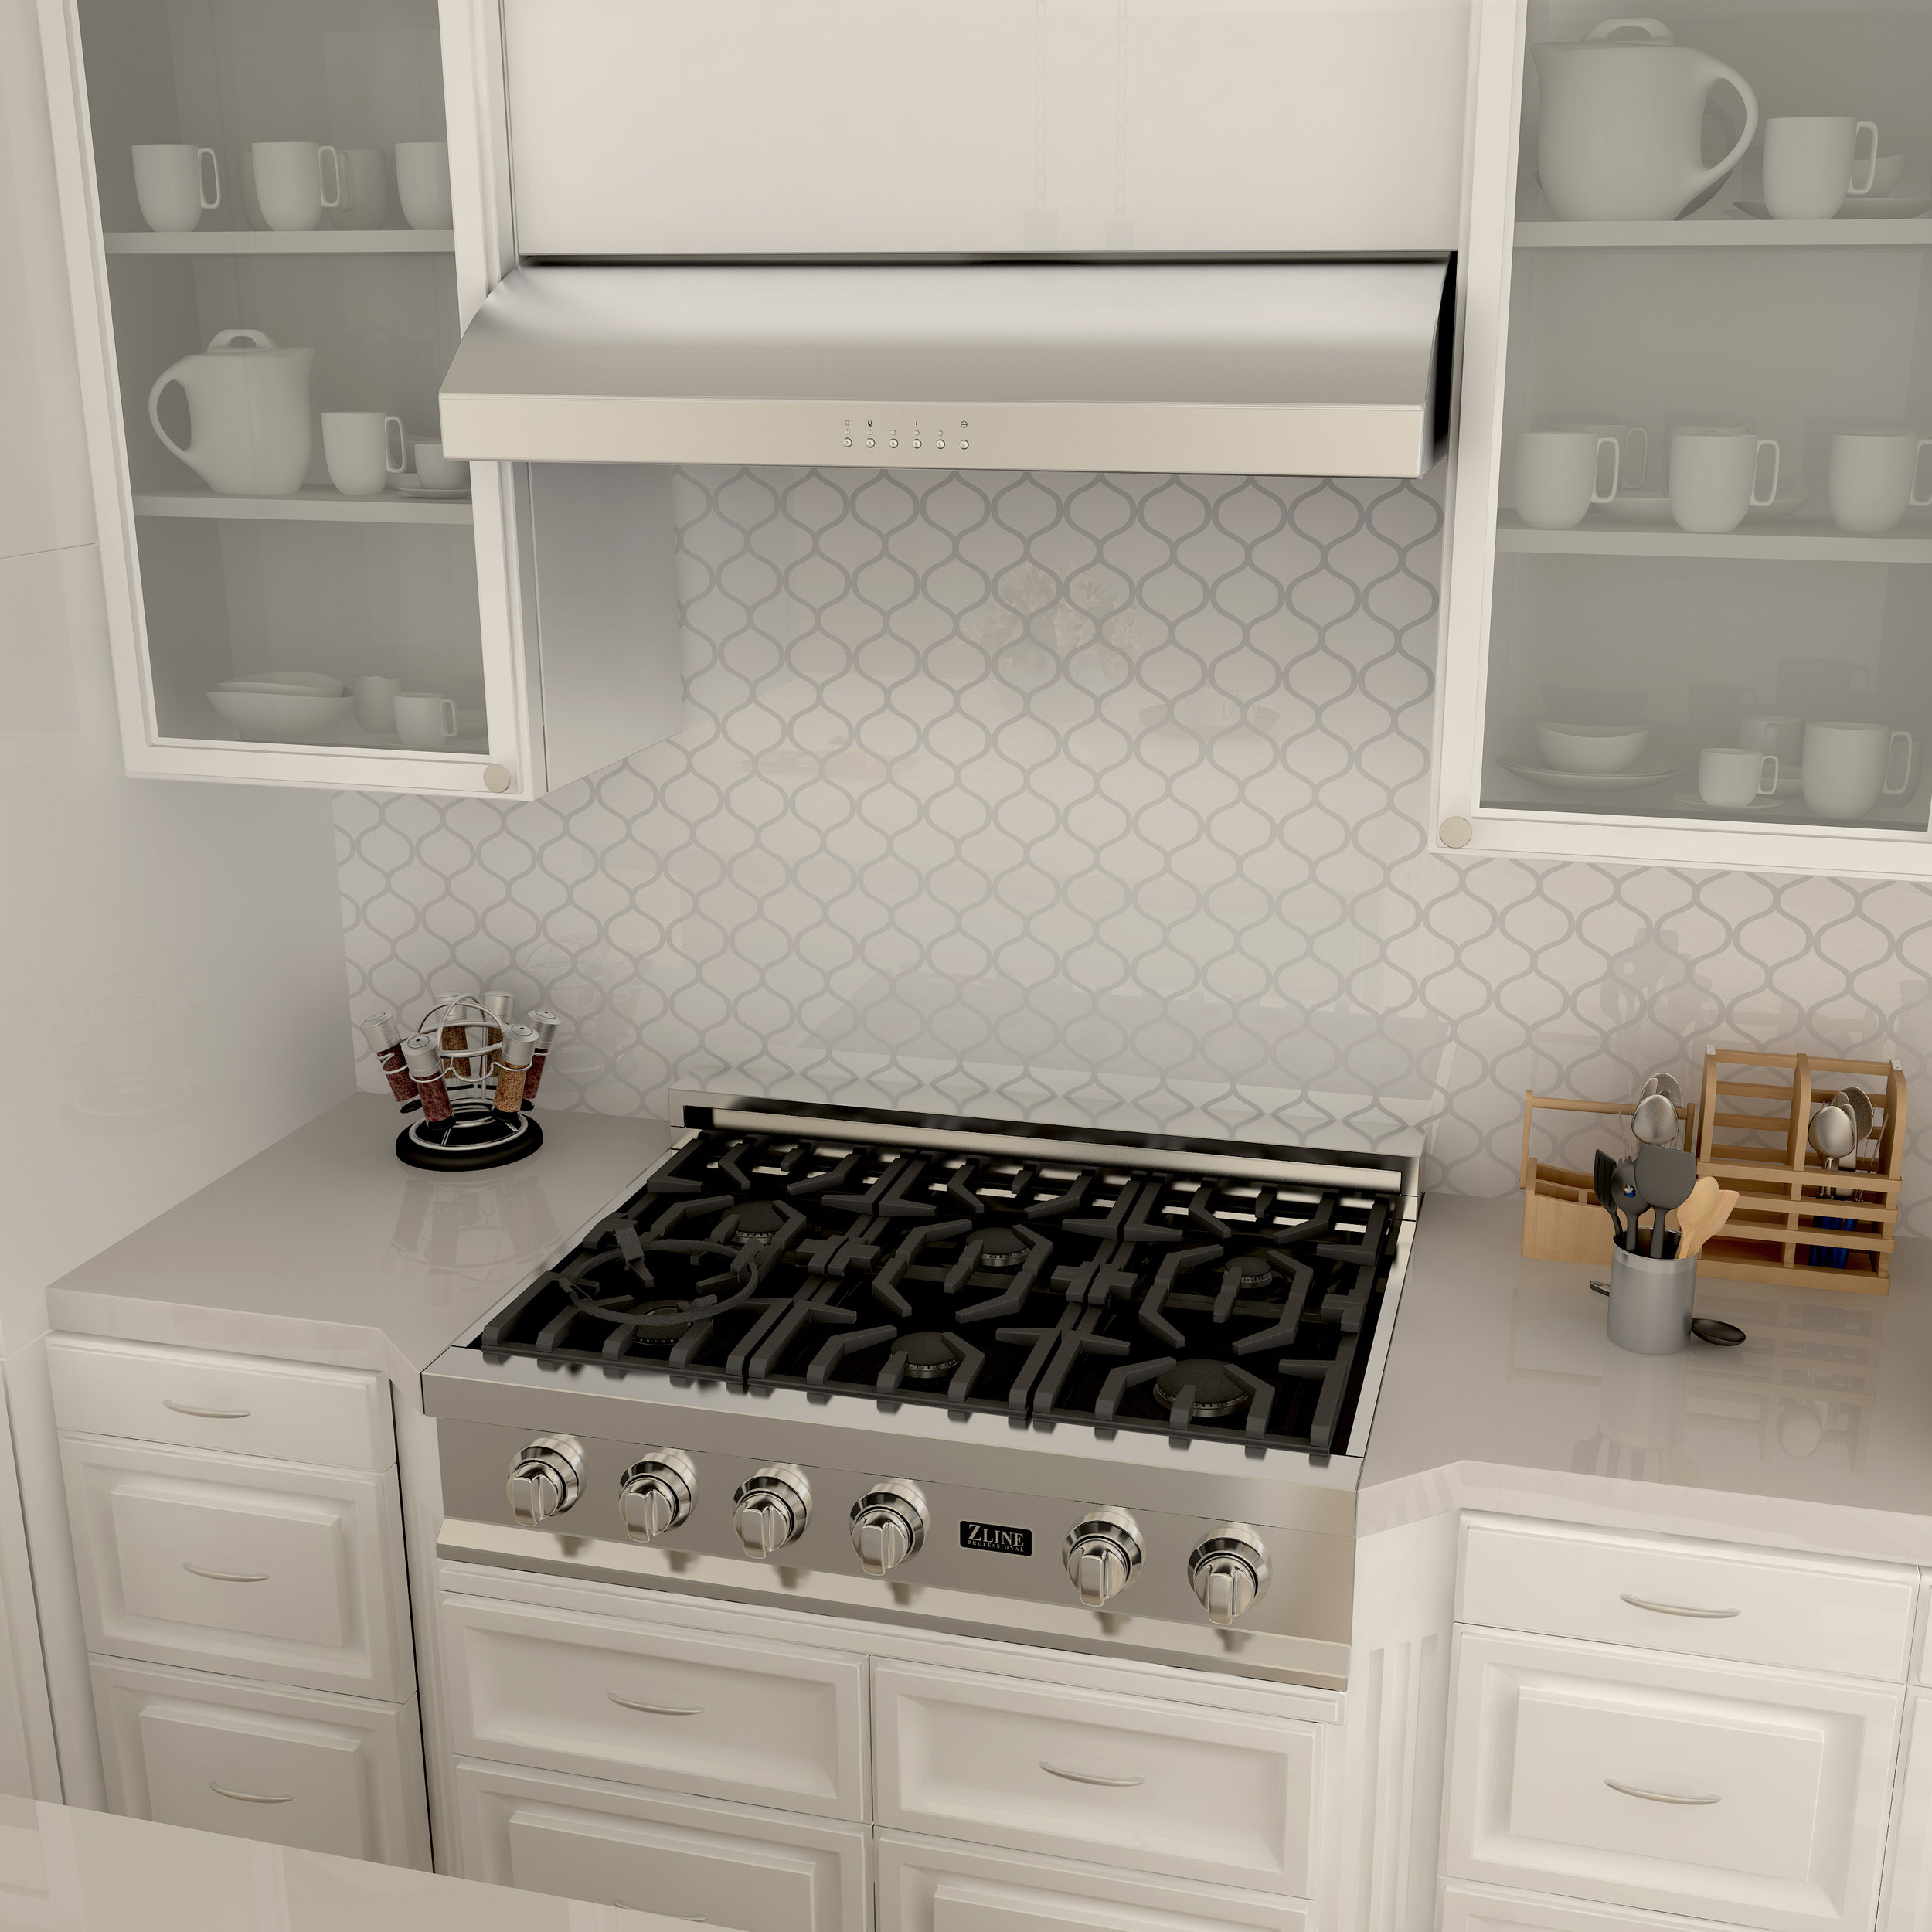 zline-stainless-steel-under-cabinet-range-hood-627-kitchen-updated-2.jpg